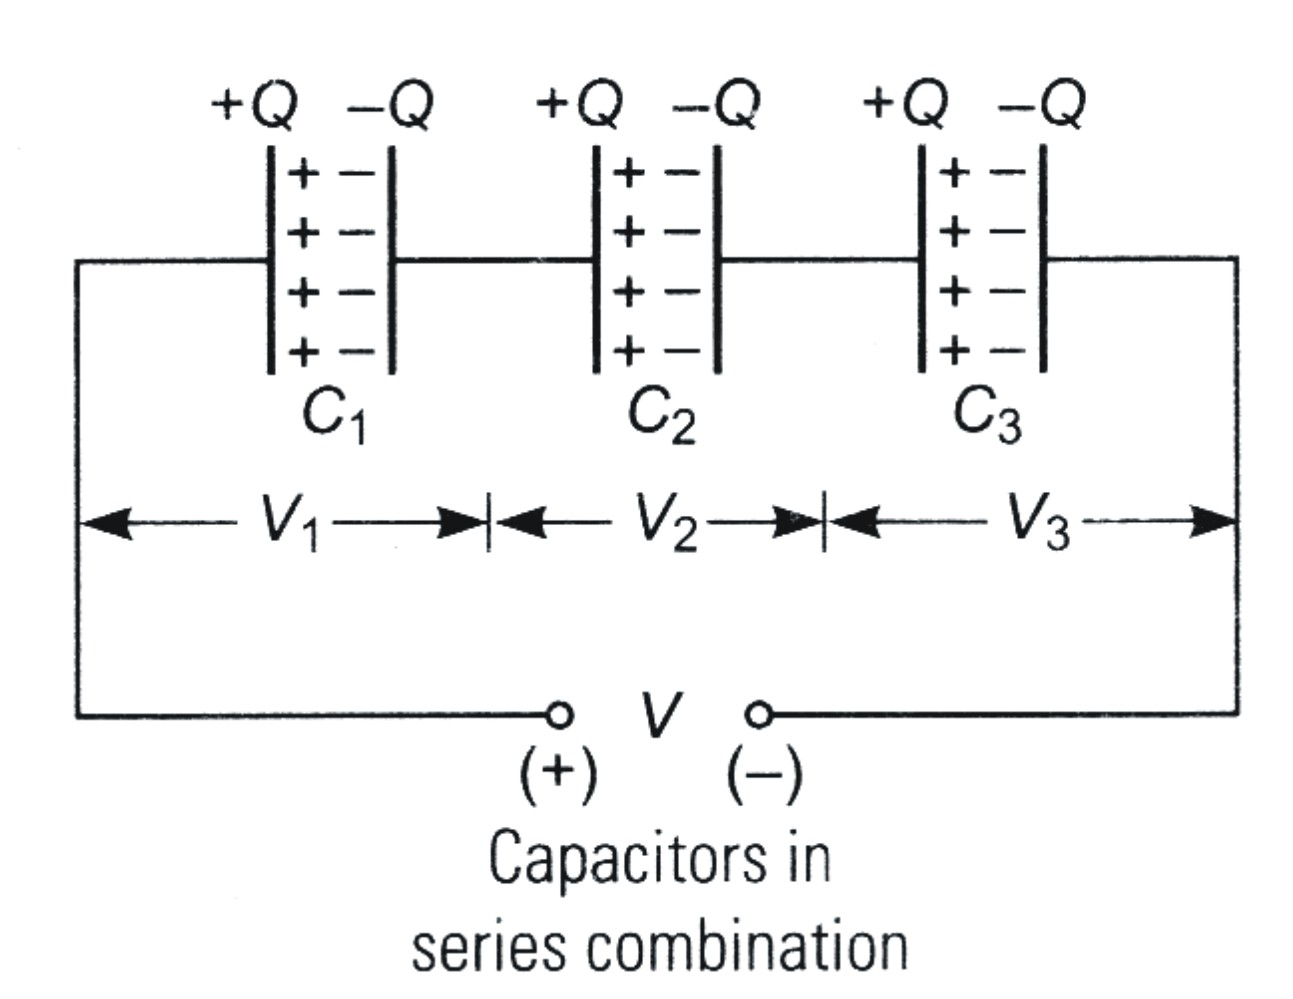 capacitance and charge on a capacitors plates